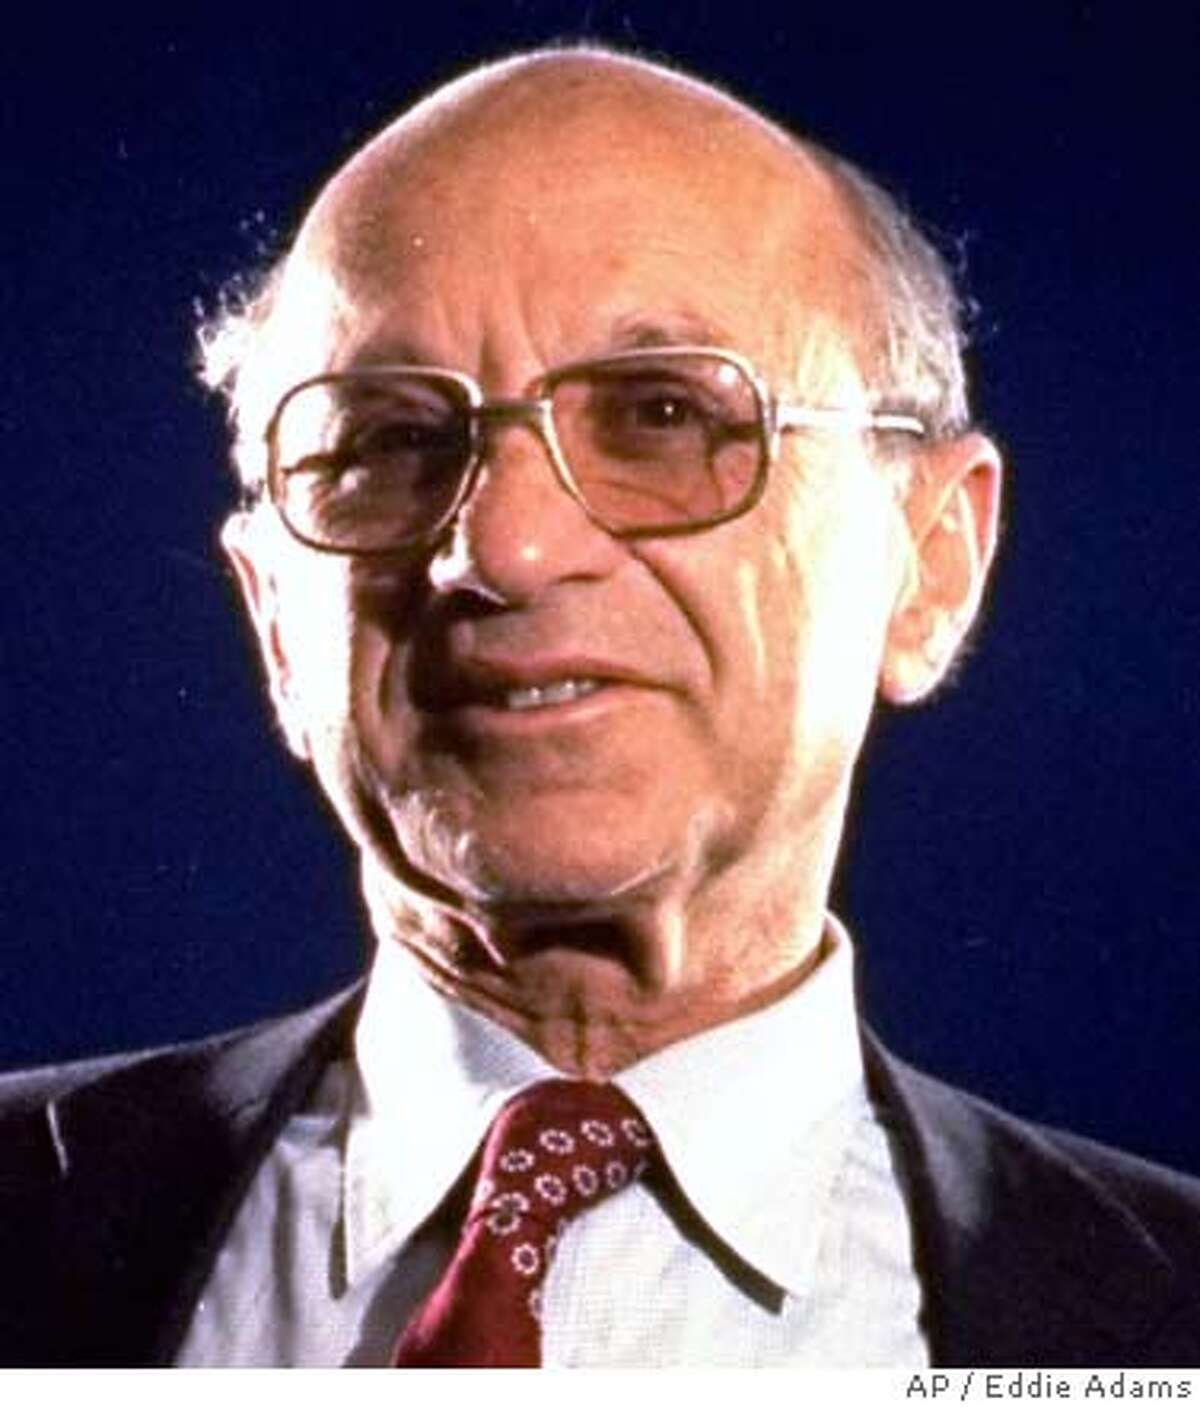 ** FILE ** Dr. Milton Friedman who won the 1976 Nobel Prize for economics poses for a photo in a 1977 file photo. Friedman has died at age 94, a spokesman for the Milton & D. Rose Friedman foundation says. (AP Photo/Eddie Adams, File) Ran on: 11-17-2006 Milton Friedman won the 1976 Nobel Prize in economics for his work on the link between monetary policy and inflation. Ran on: 11-17-2006 Milton Friedman won the 1976 Nobel Prize in economics for his work on the link between monetary policy and inflation. 1977 FILE PHOTO